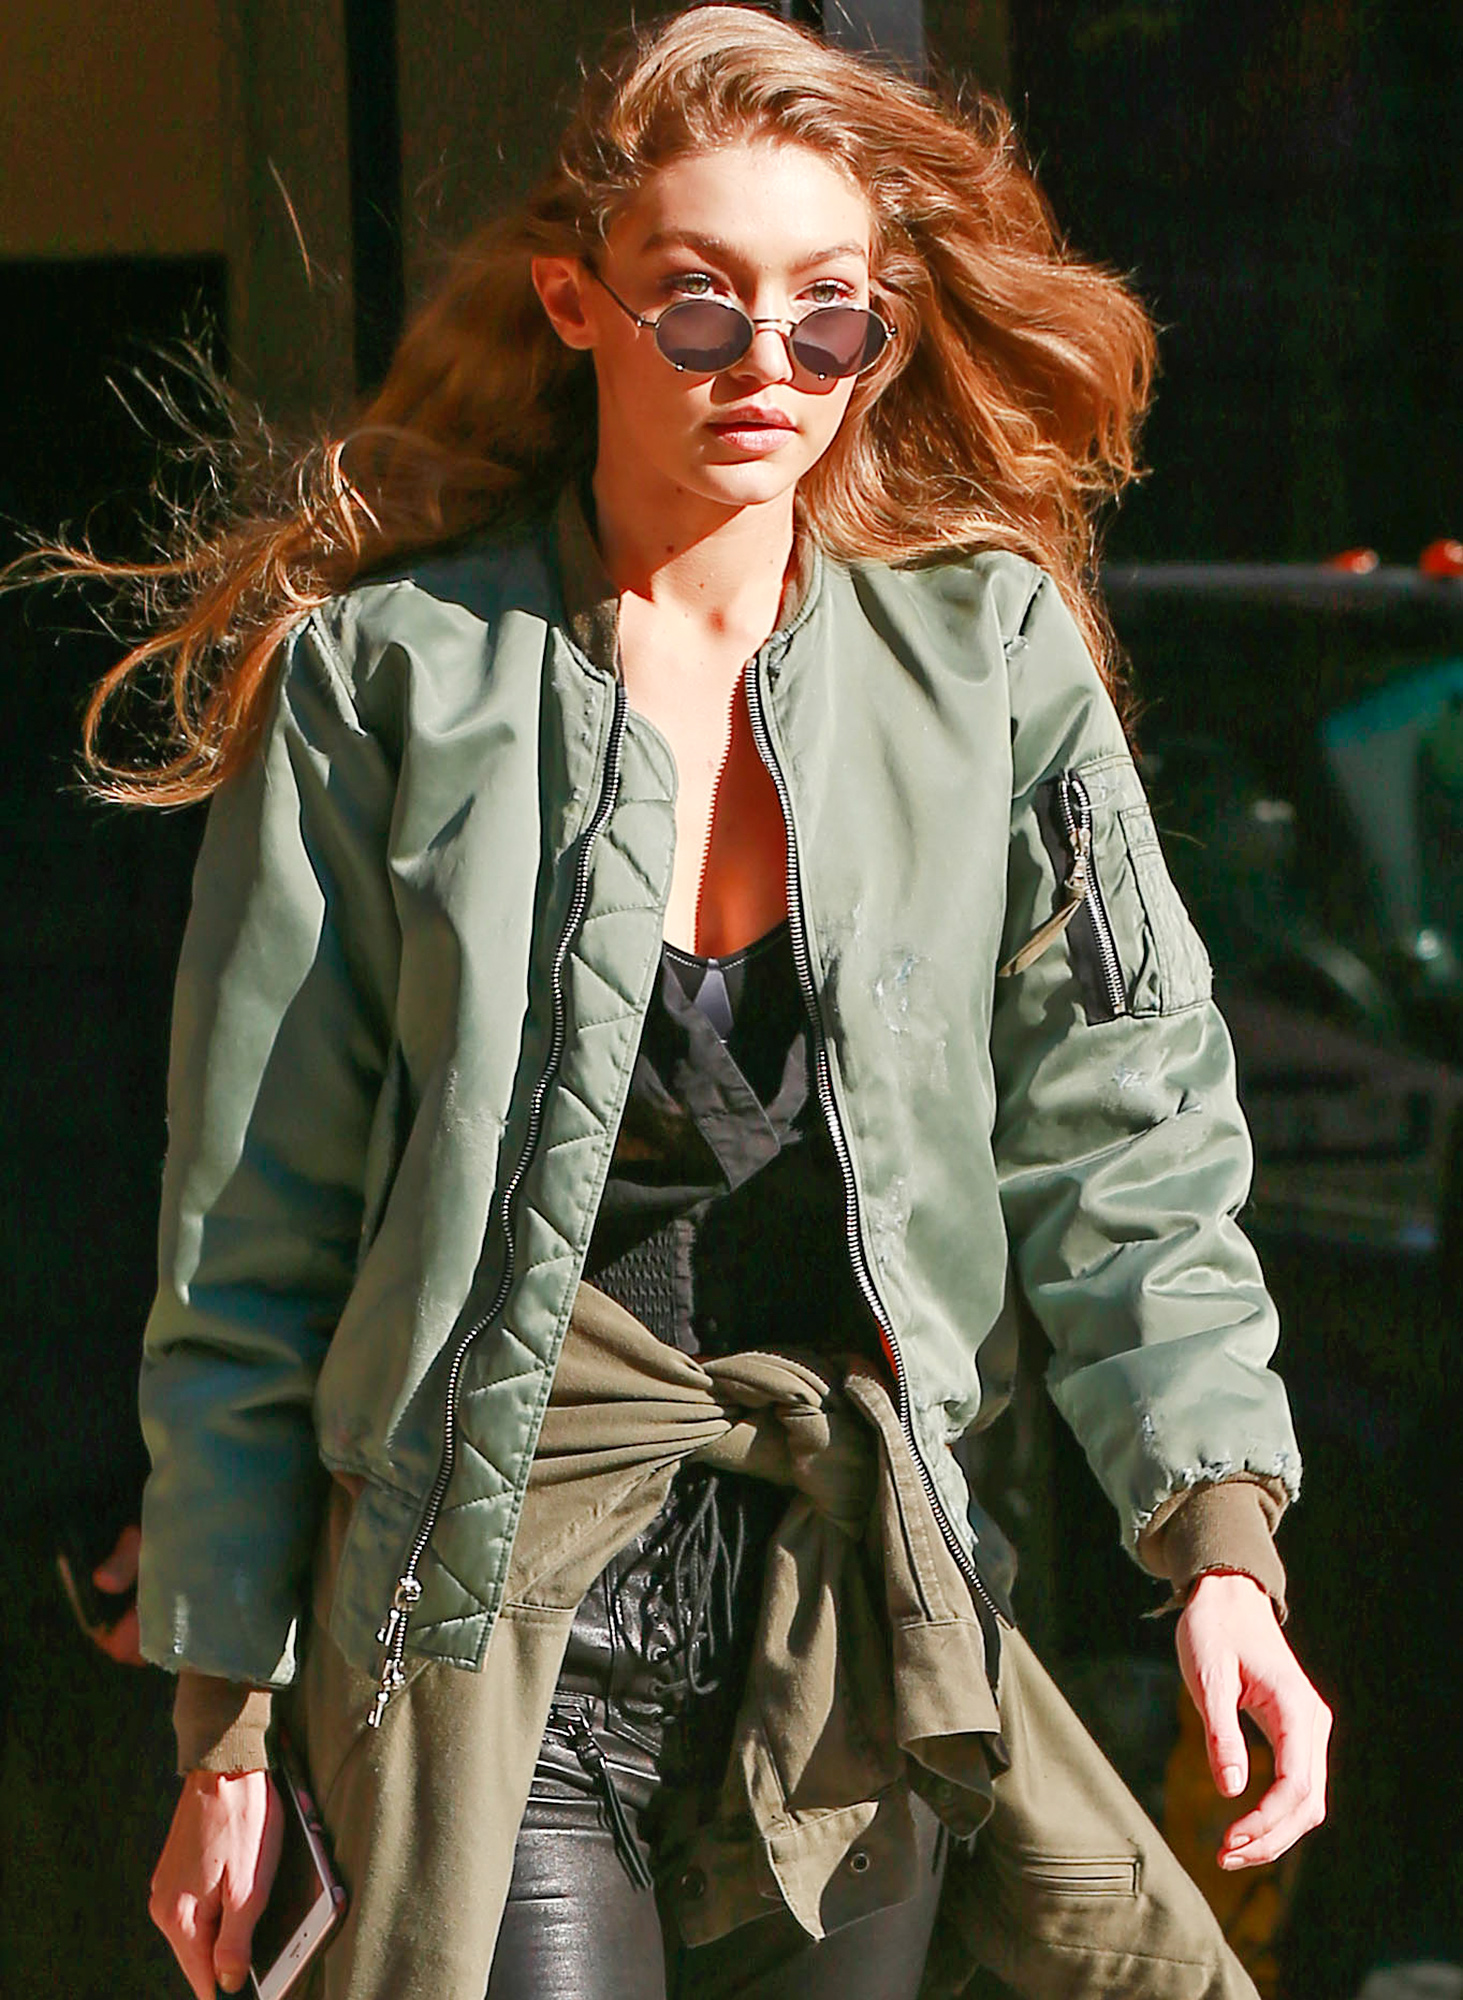 Gigi Hadid wears a green bomber jacket and leather pants in New York City